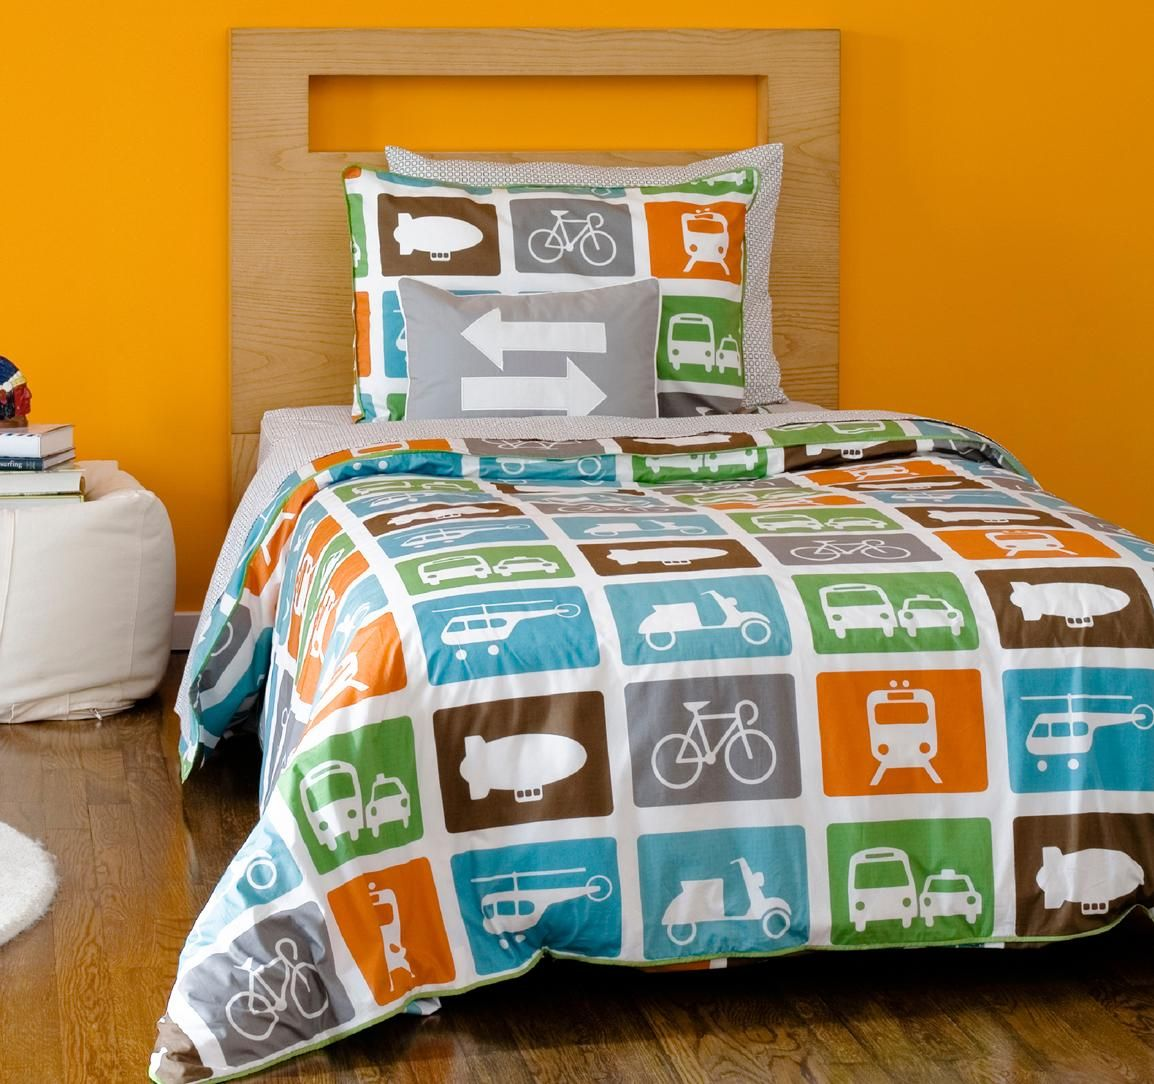 amazing dwell studio kids bedding transportation duvet set kids  - amazing dwell studio kids bedding transportation duvet set kids love movingvehicles beautiful pattern dwell studio